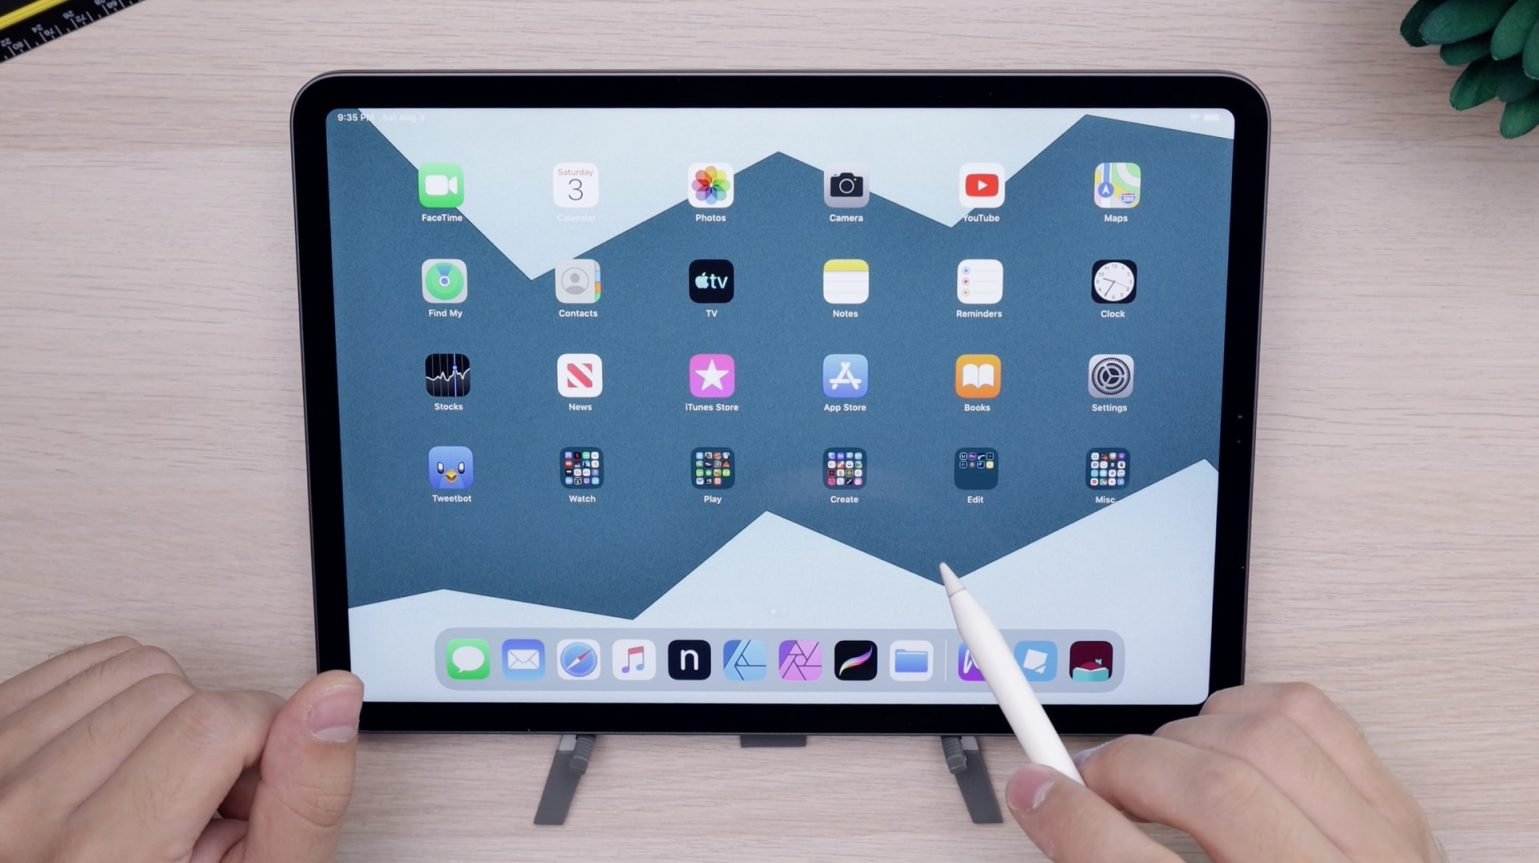 Rumored 12.9-inch 2021 iPad Pro likely to support mmWave 5G